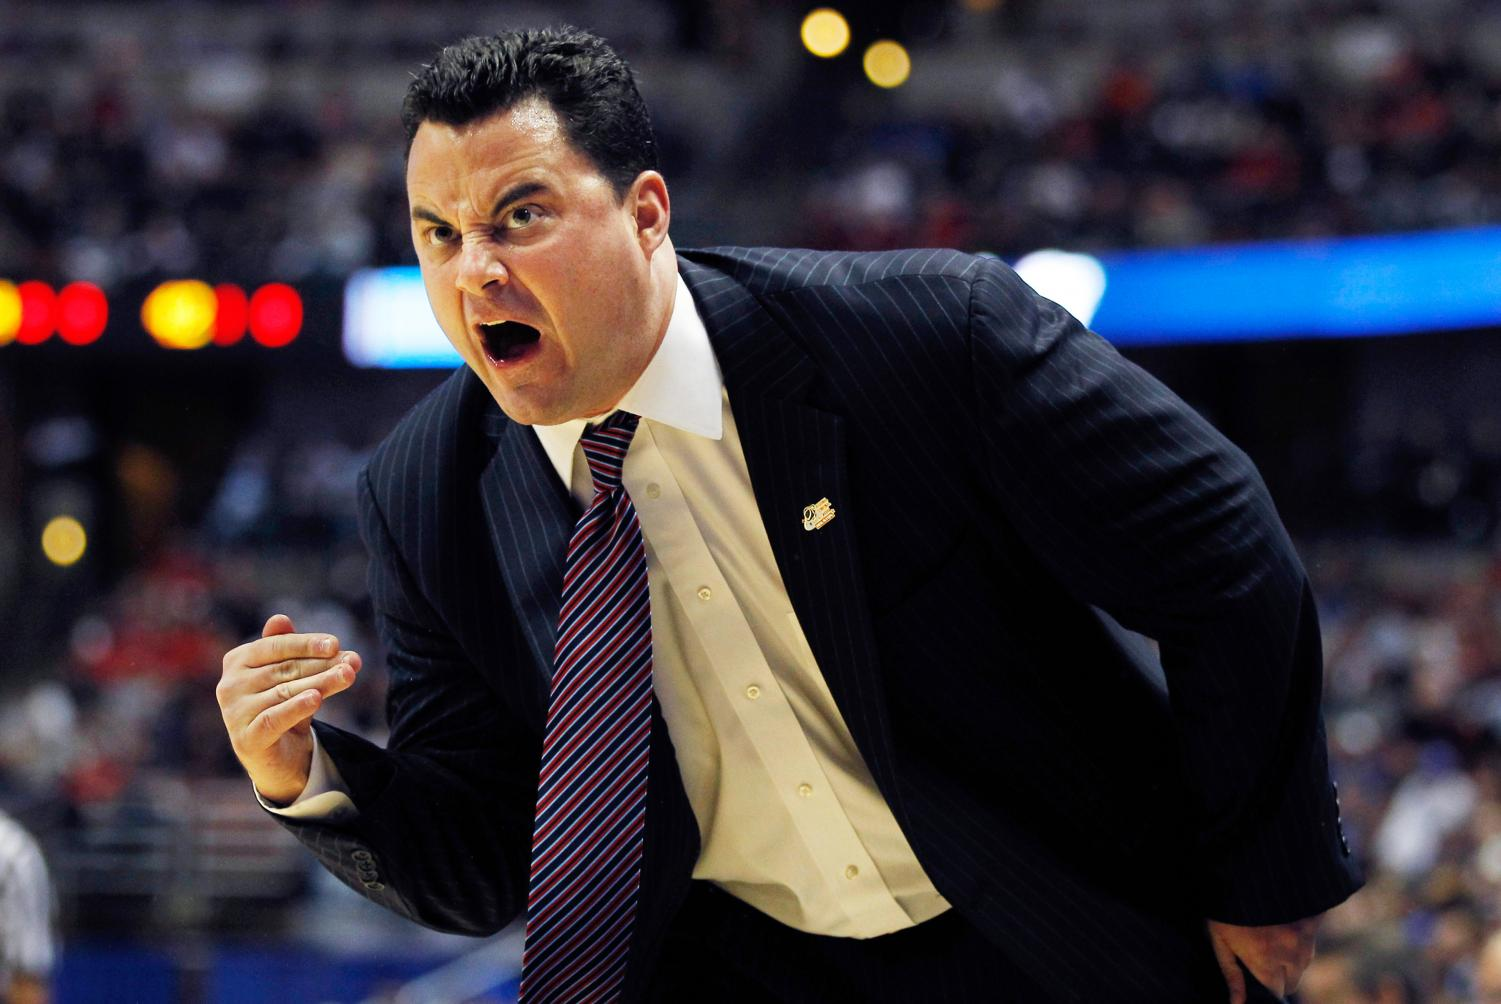 Arizona head coach Sean Miller urges on his players in the first half against Duke at the Honda Center in Anaheim, California, on Mar. 24, 2011.